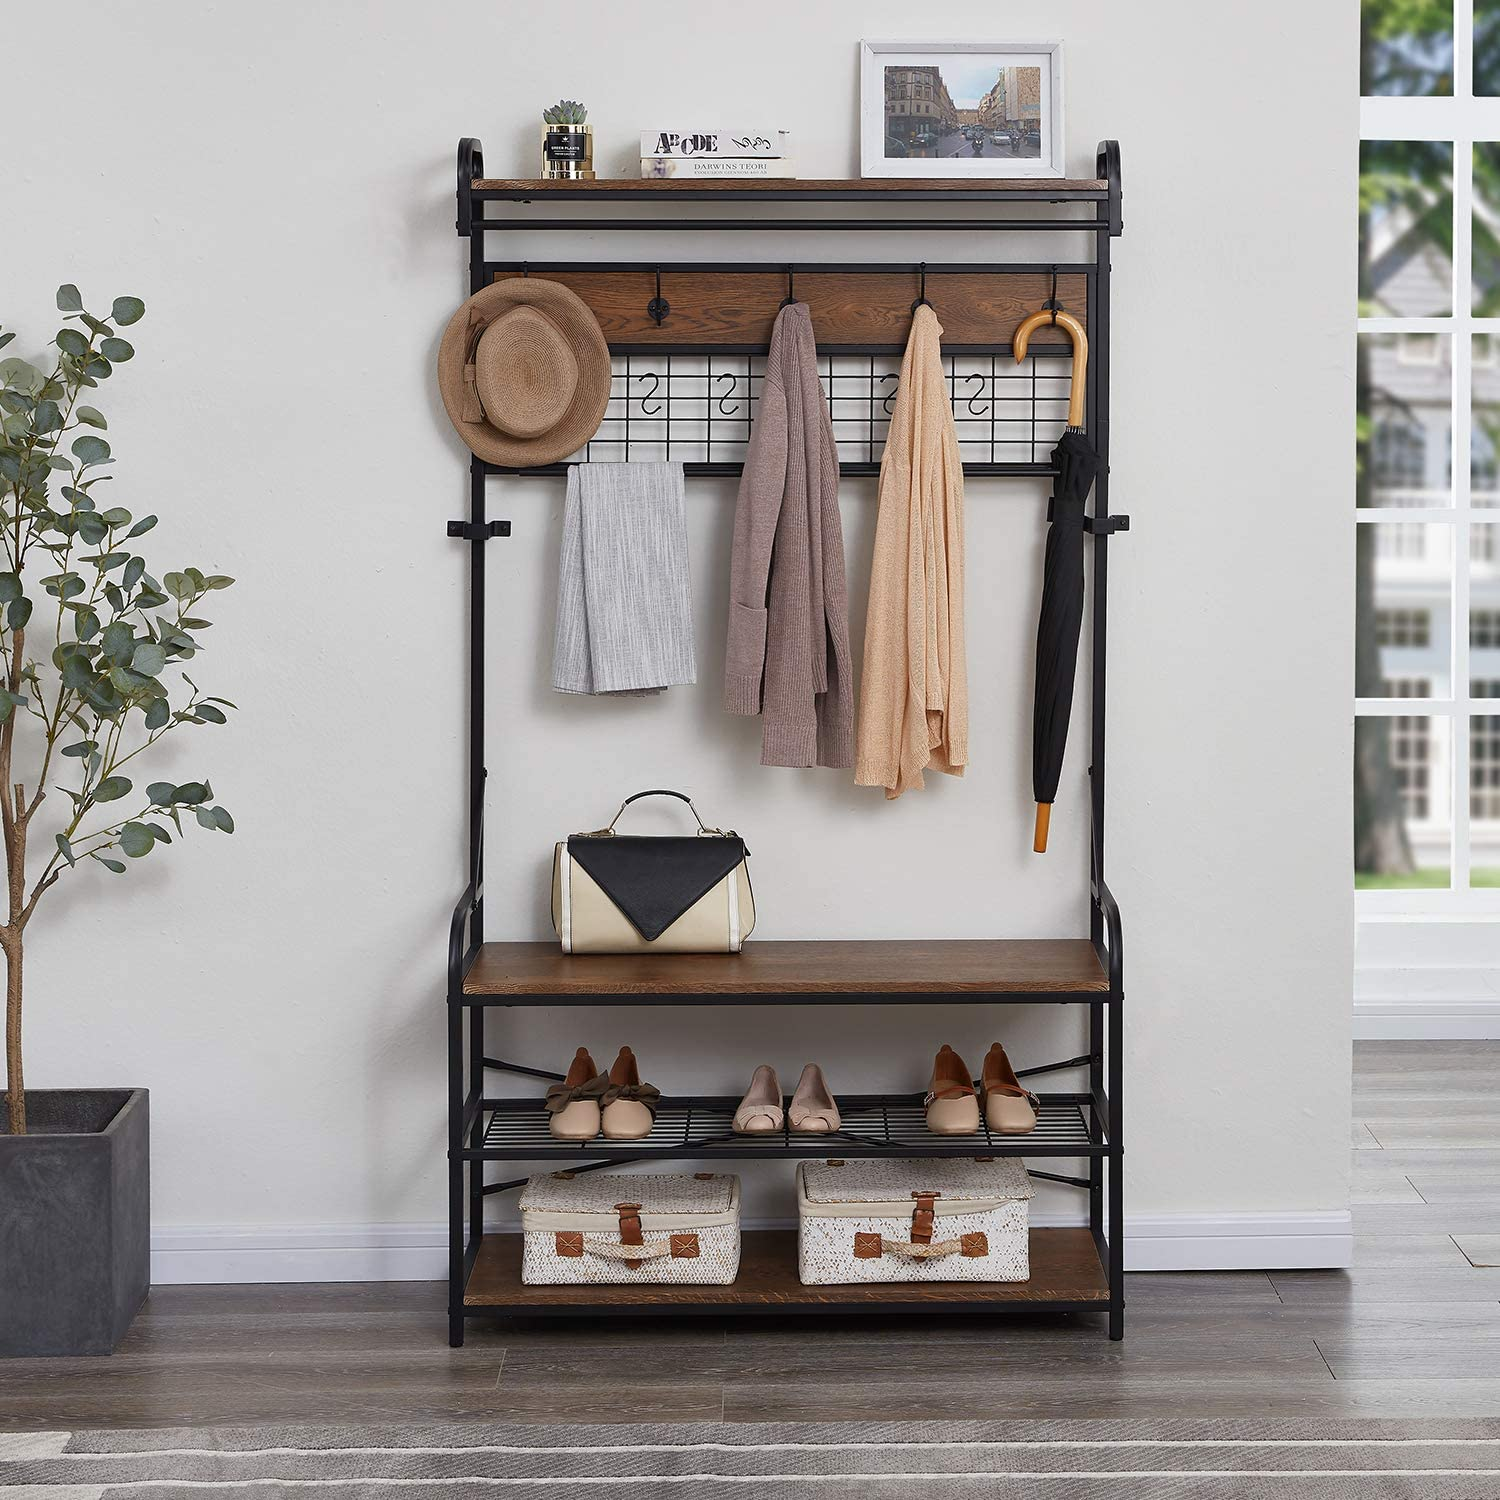 Homissue 5-In-1 Entryway Hall Tree with Shoe Bench, Coat Rack with 11 Hooks and 2 Hanging Rods, Grid Panel for Memo and Photo Display, Brown Finish